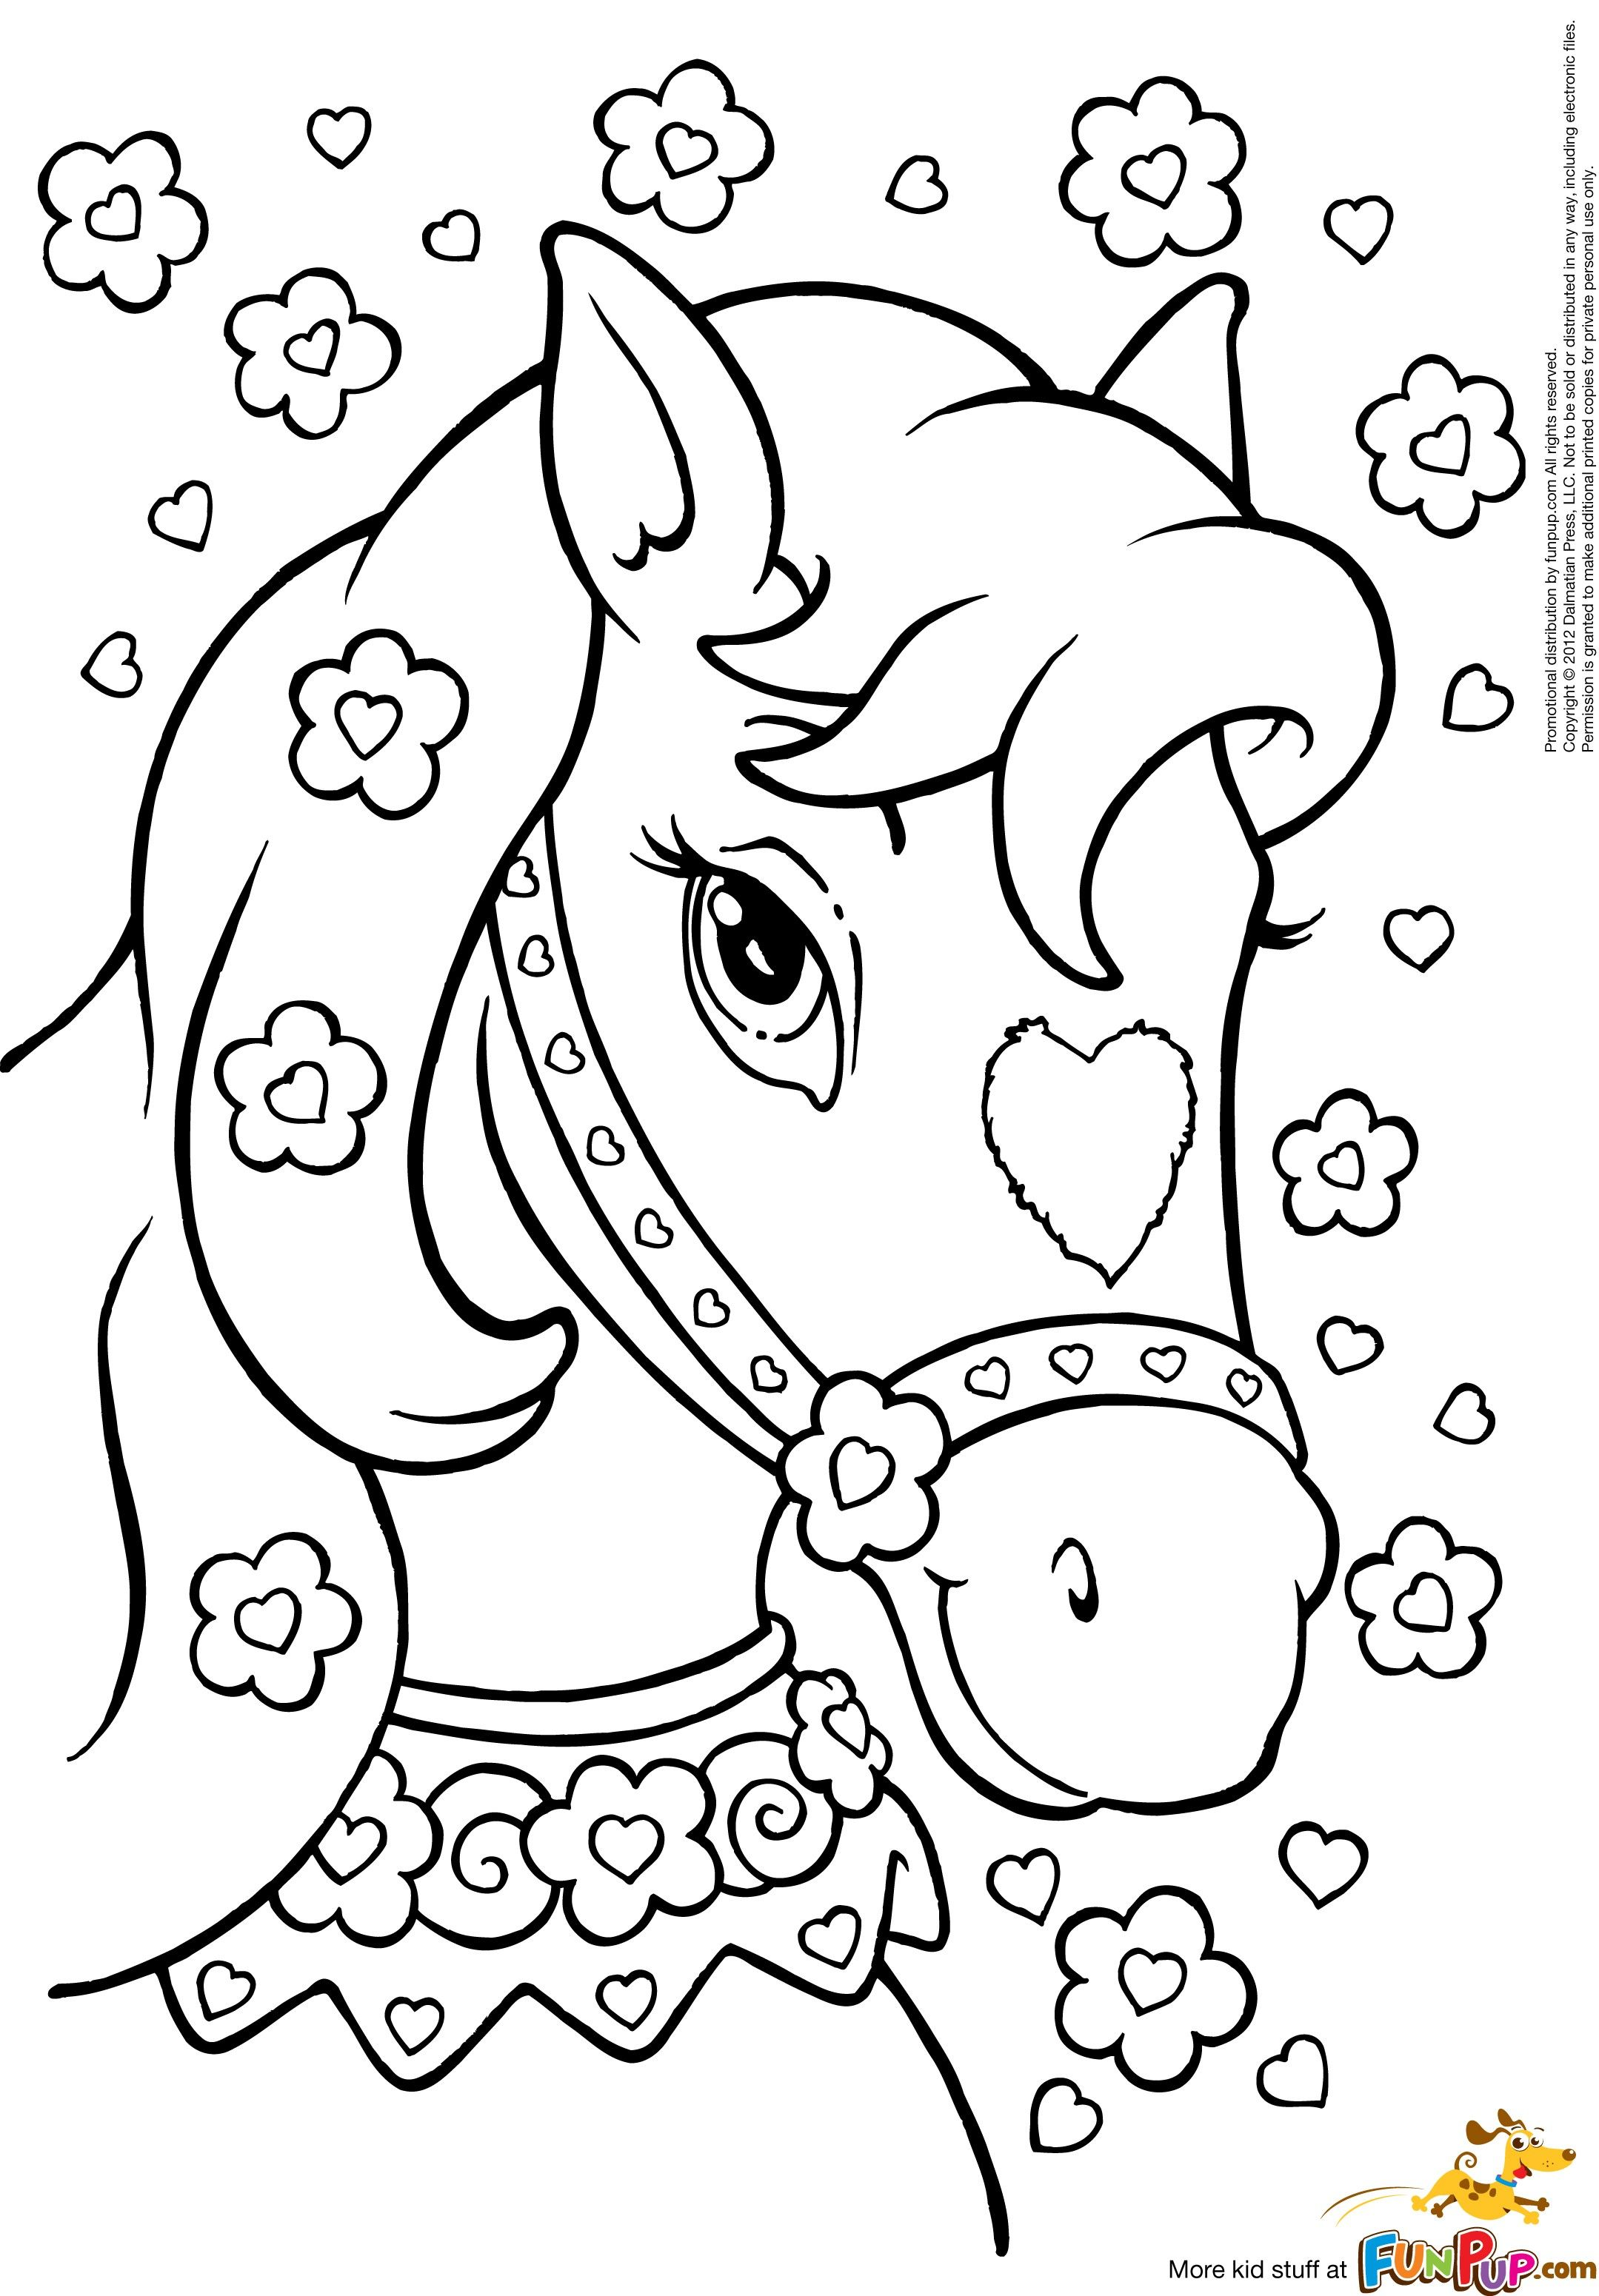 Free coloring horse pictures to print - Top 48 Free Printable Horse Coloring Pages Online Horse Craft And Coloring Books